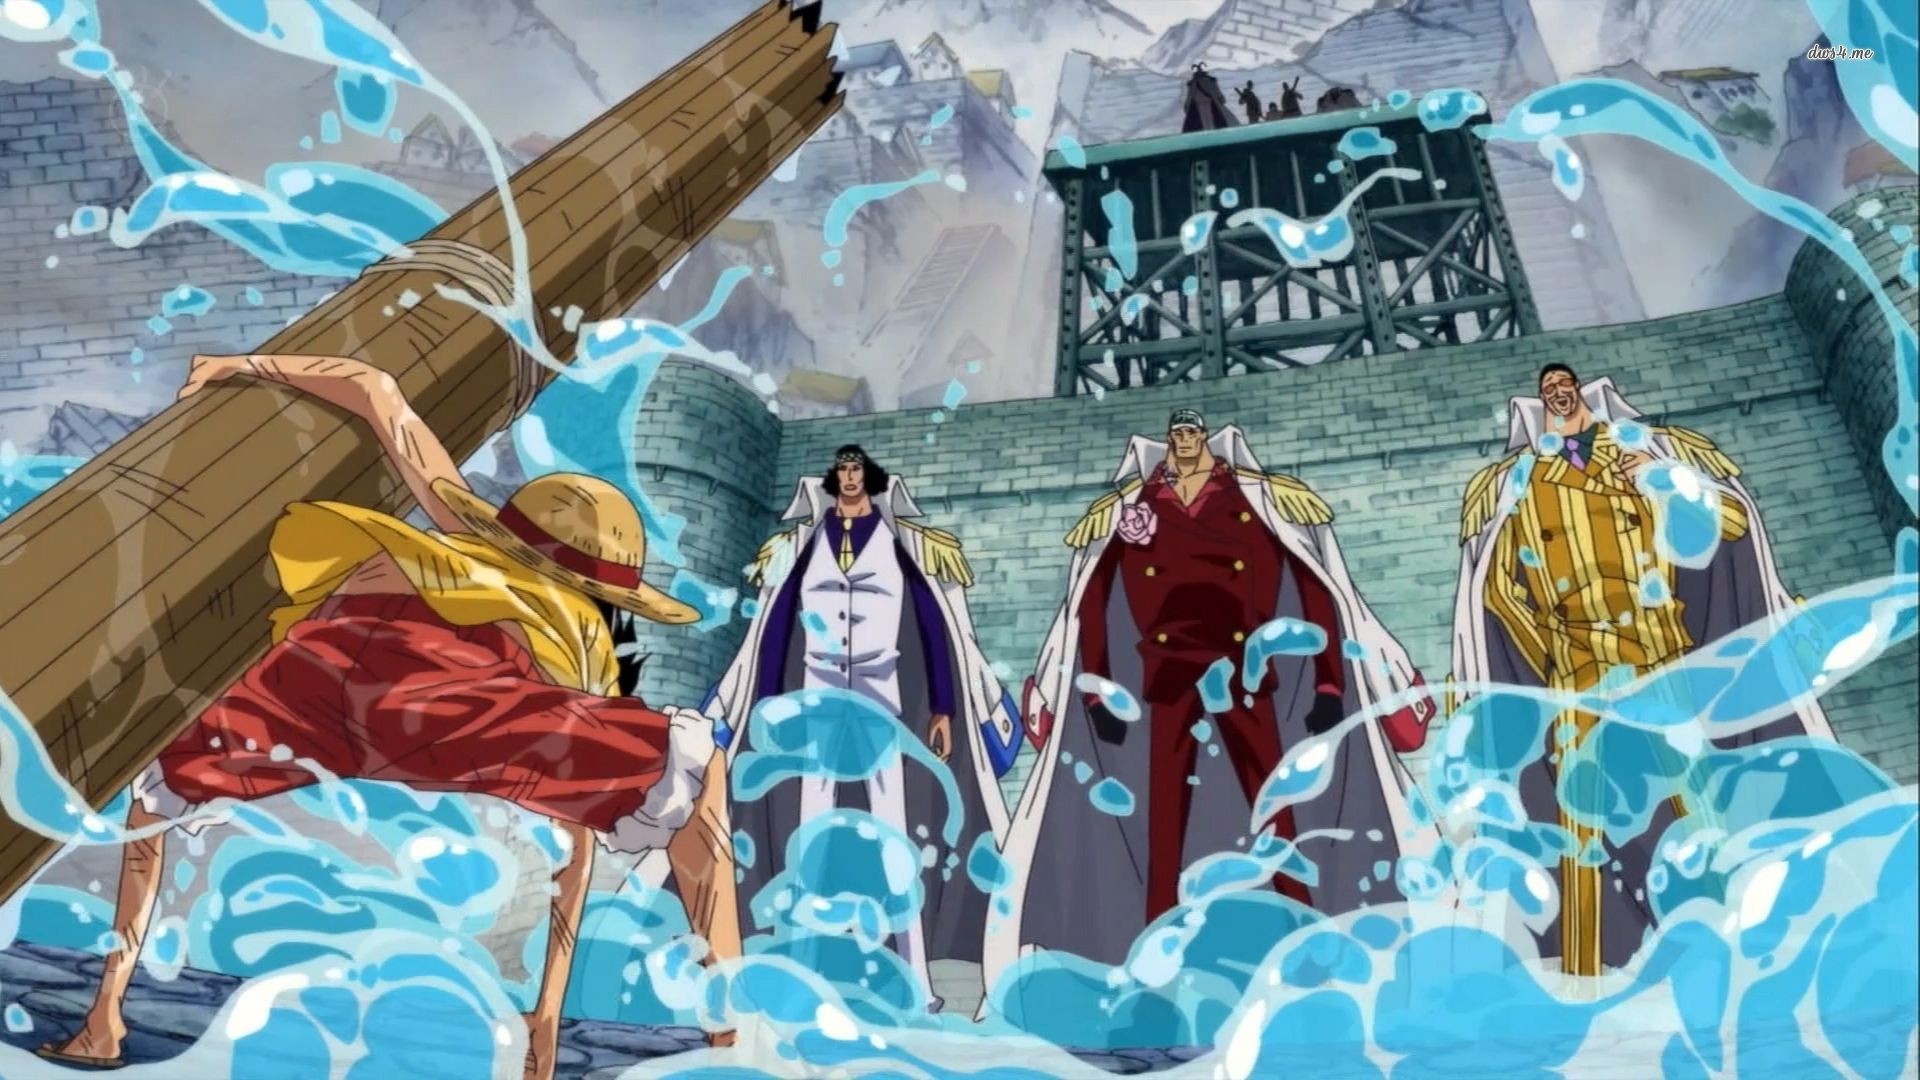 one-piece-luffy-vs-admirals-hd-wallpaper-1920x1080 | anime